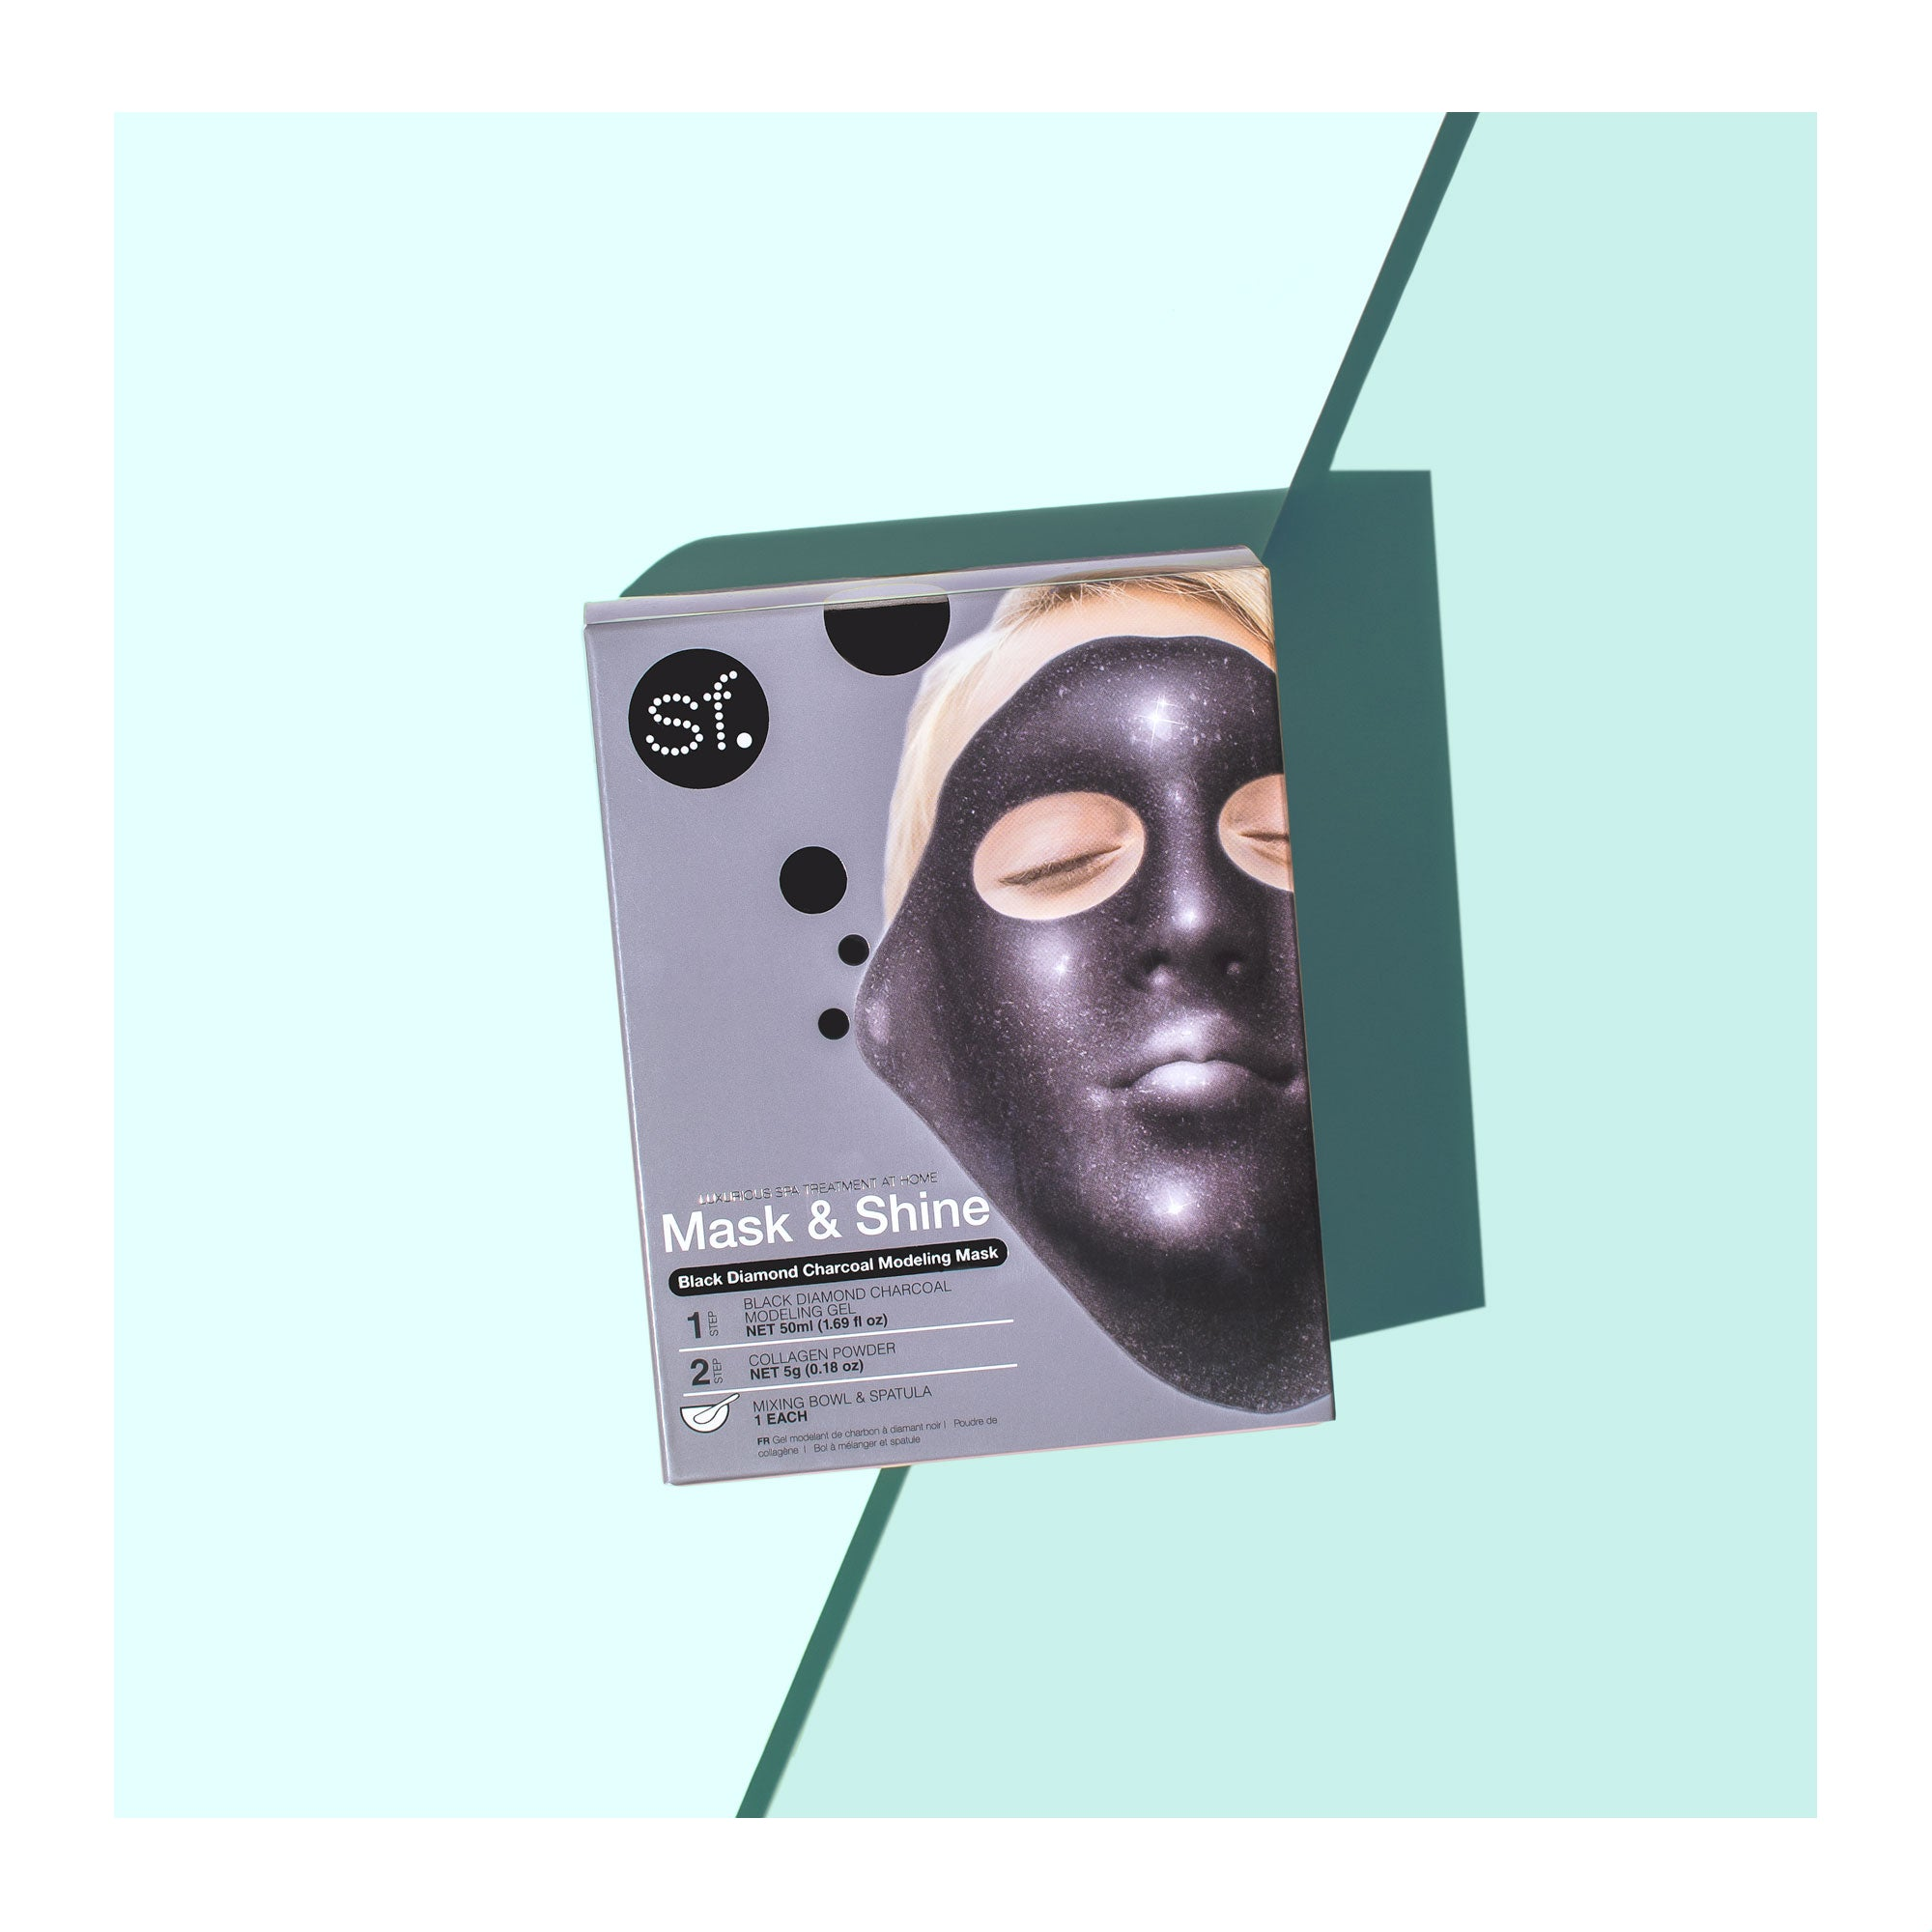 A box of Charcoal Rubber Mask, from the Mask & Shine Collection by sfglow